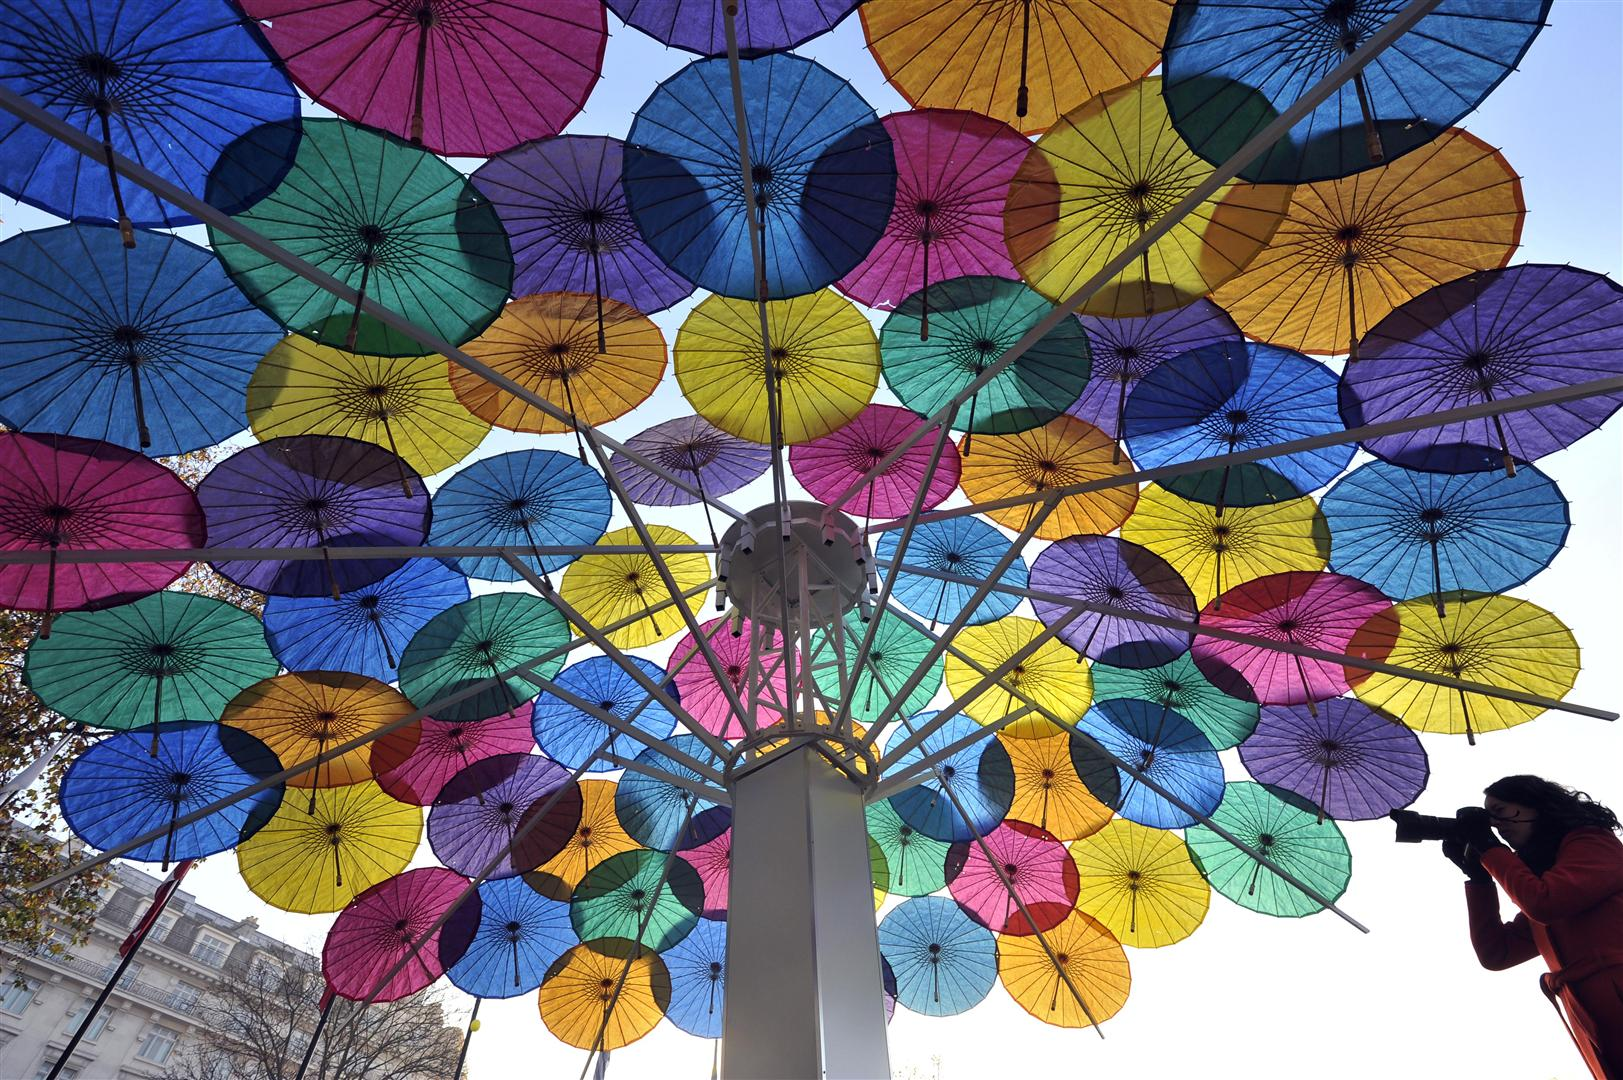 A lady in a red coat takes a photo underneath a giant cocktail umbrella constructed lots of multi-coloured parasols.